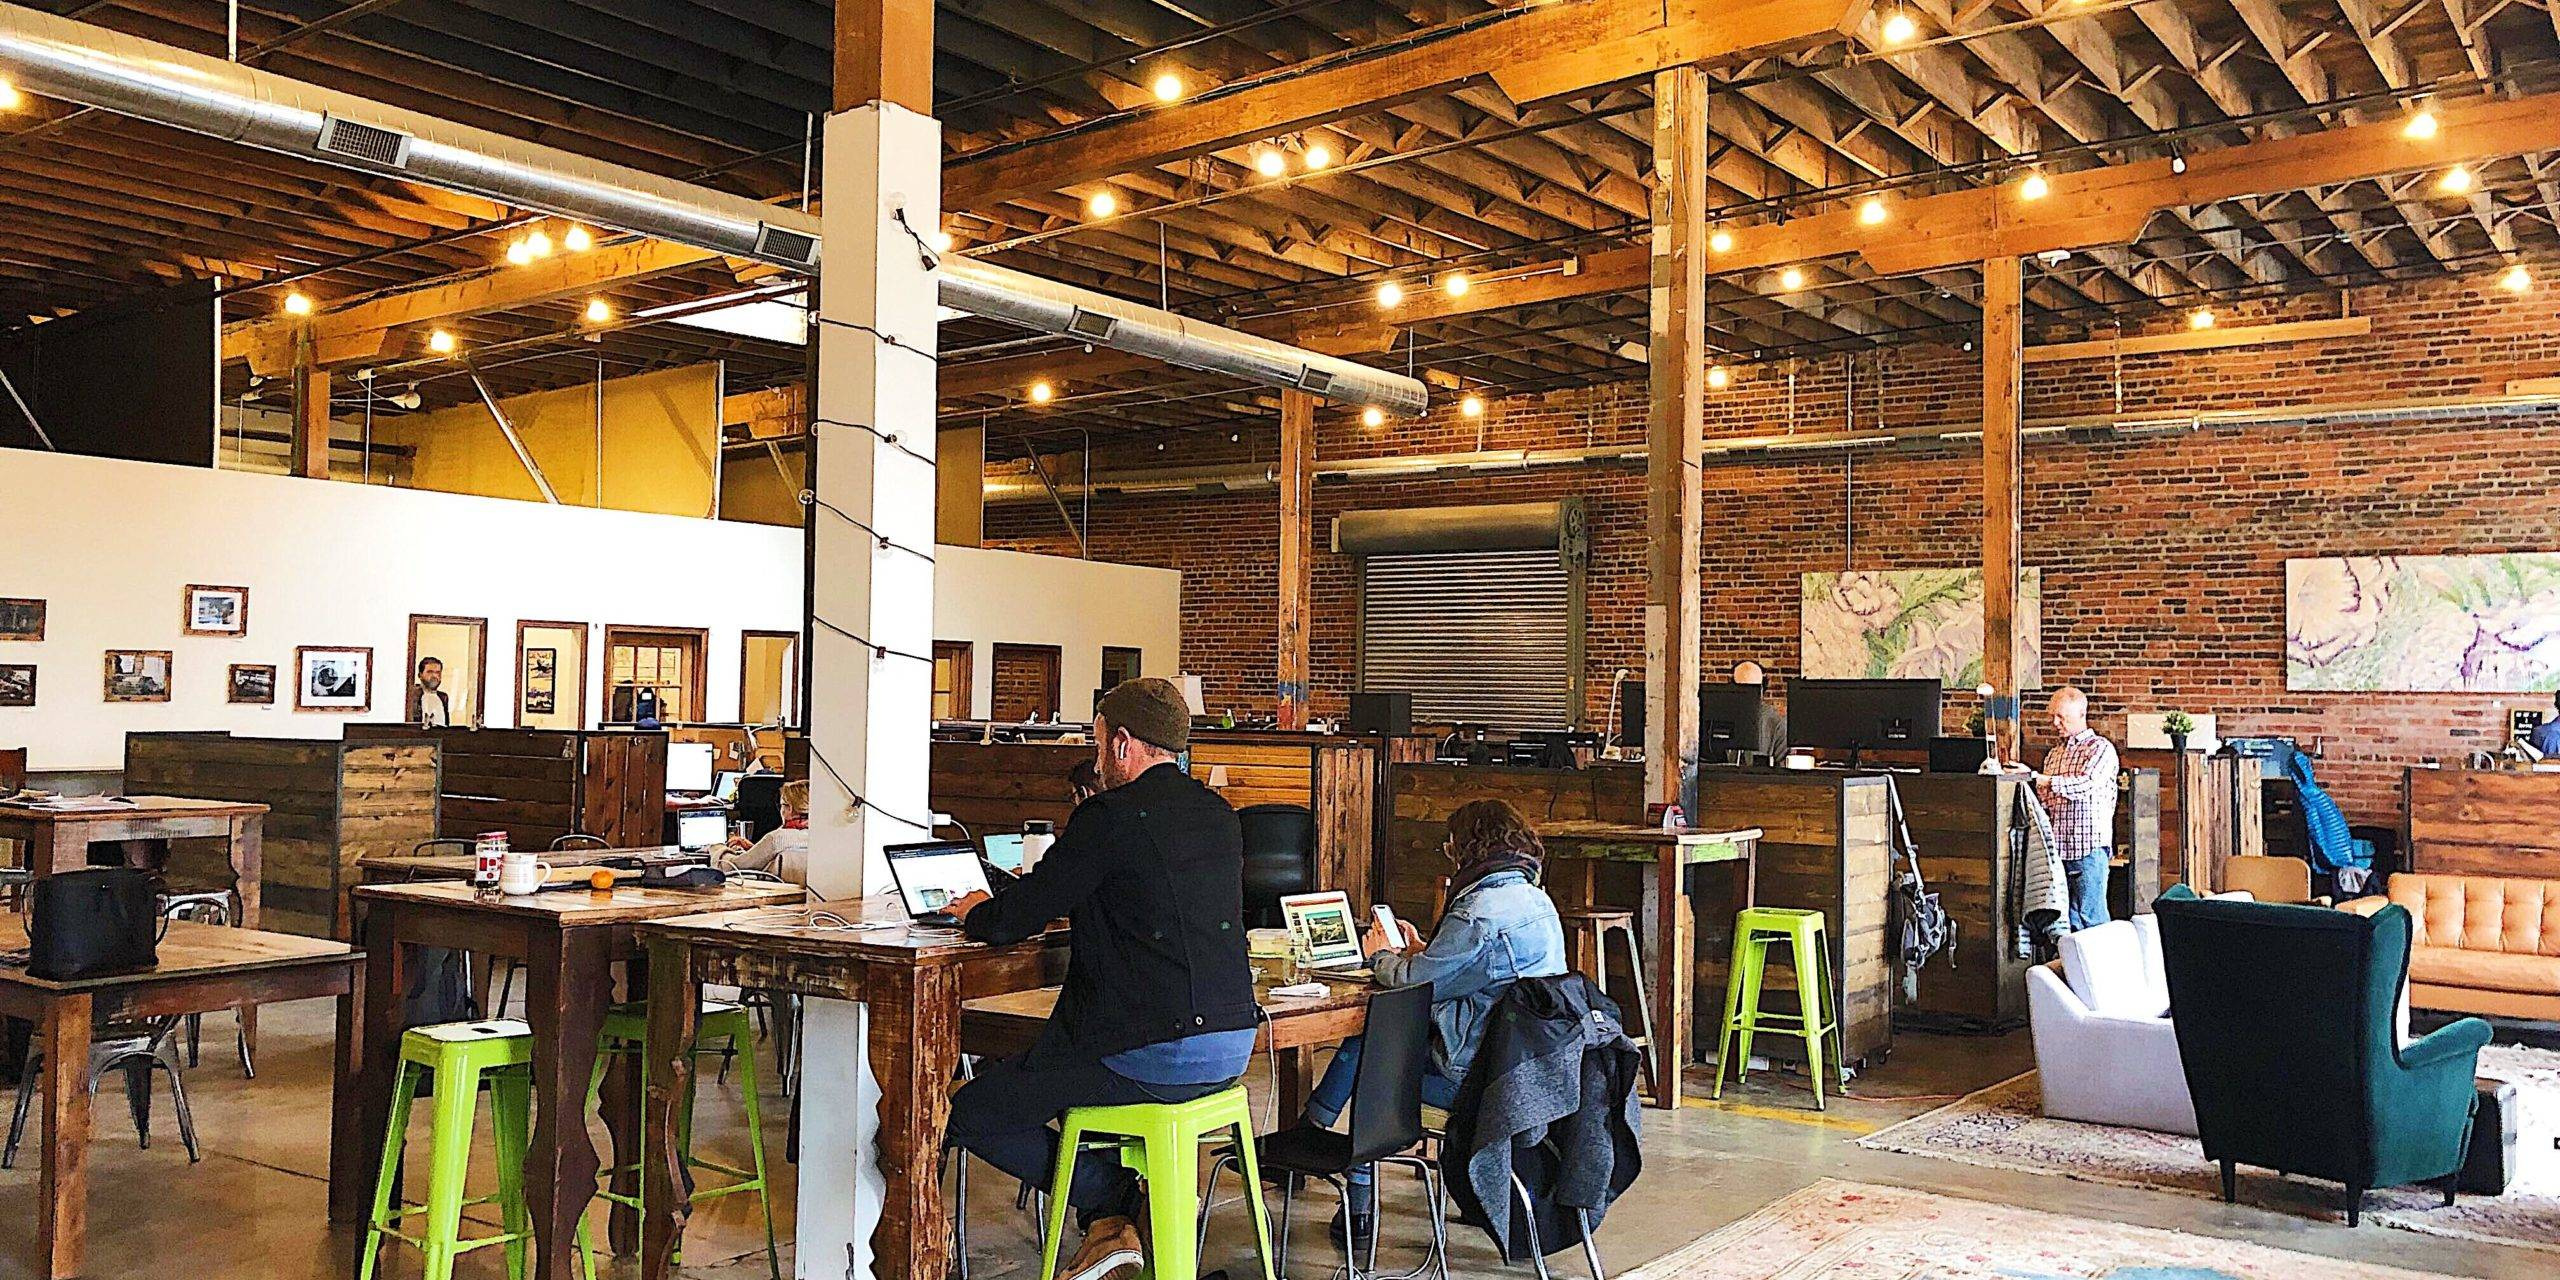 Coworking 101 Tour: Green Spaces